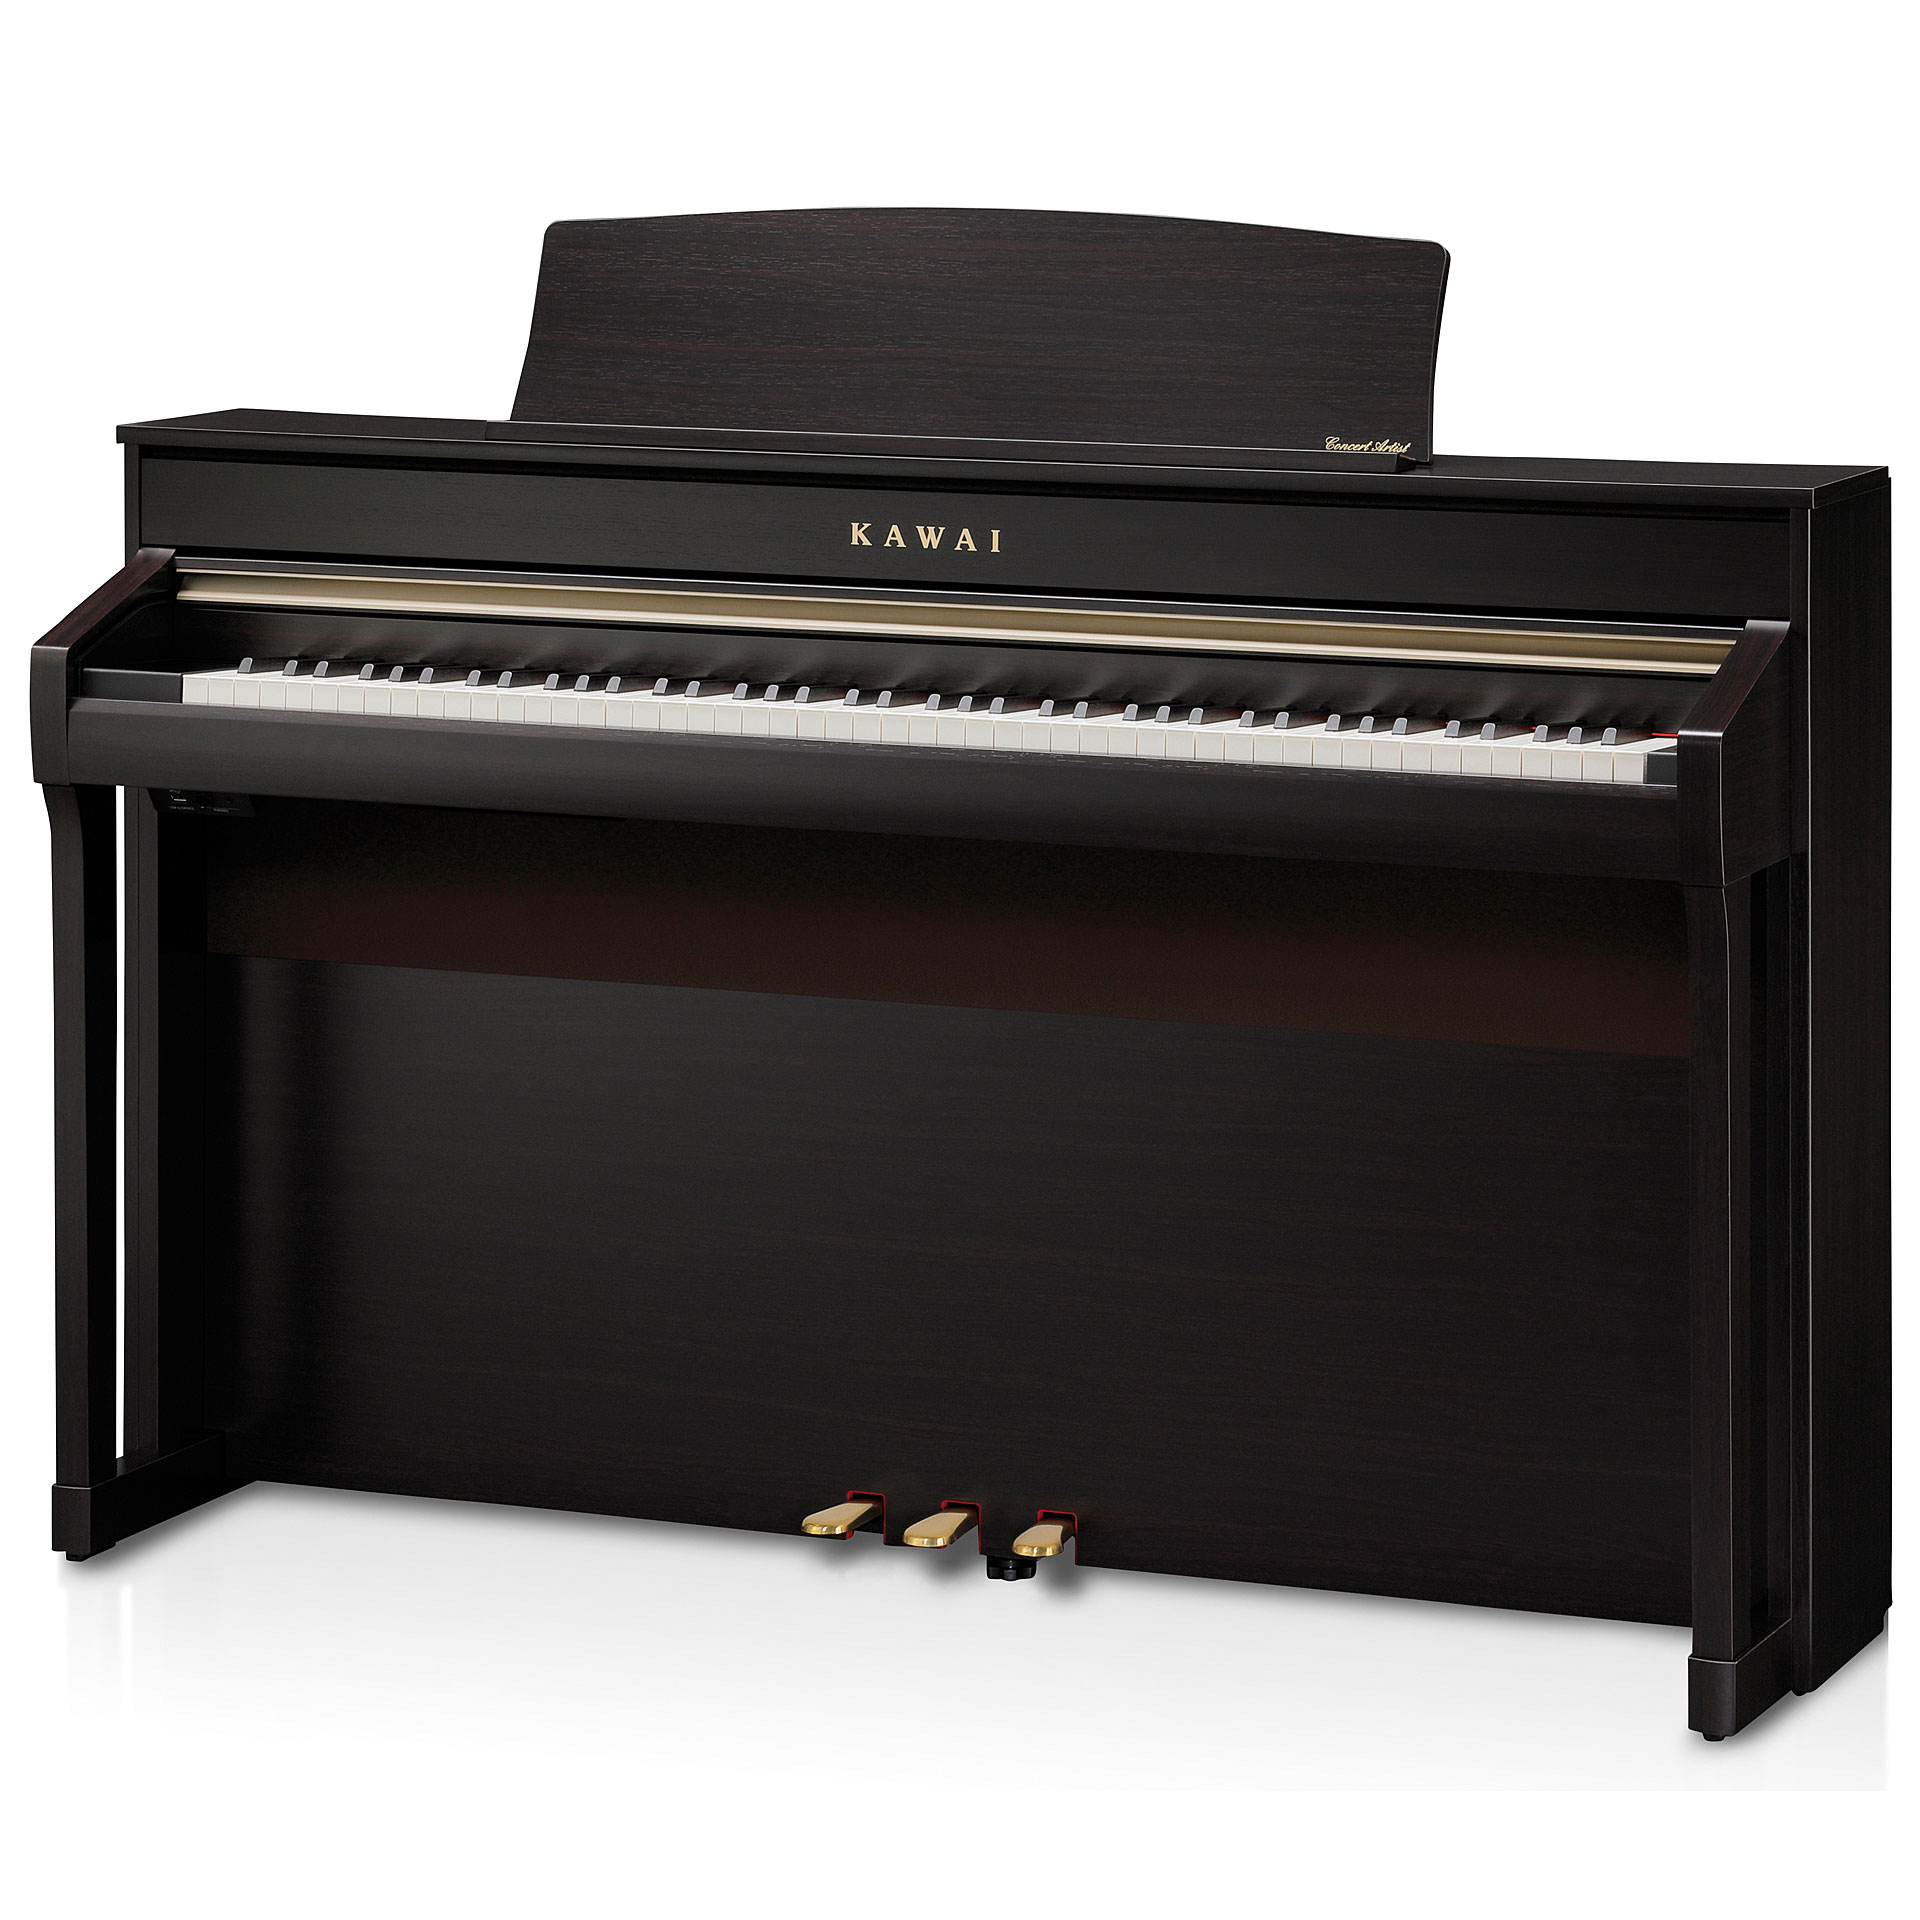 Kawai ca 98 r piano num rique for 2 box auto separati piani gratuiti